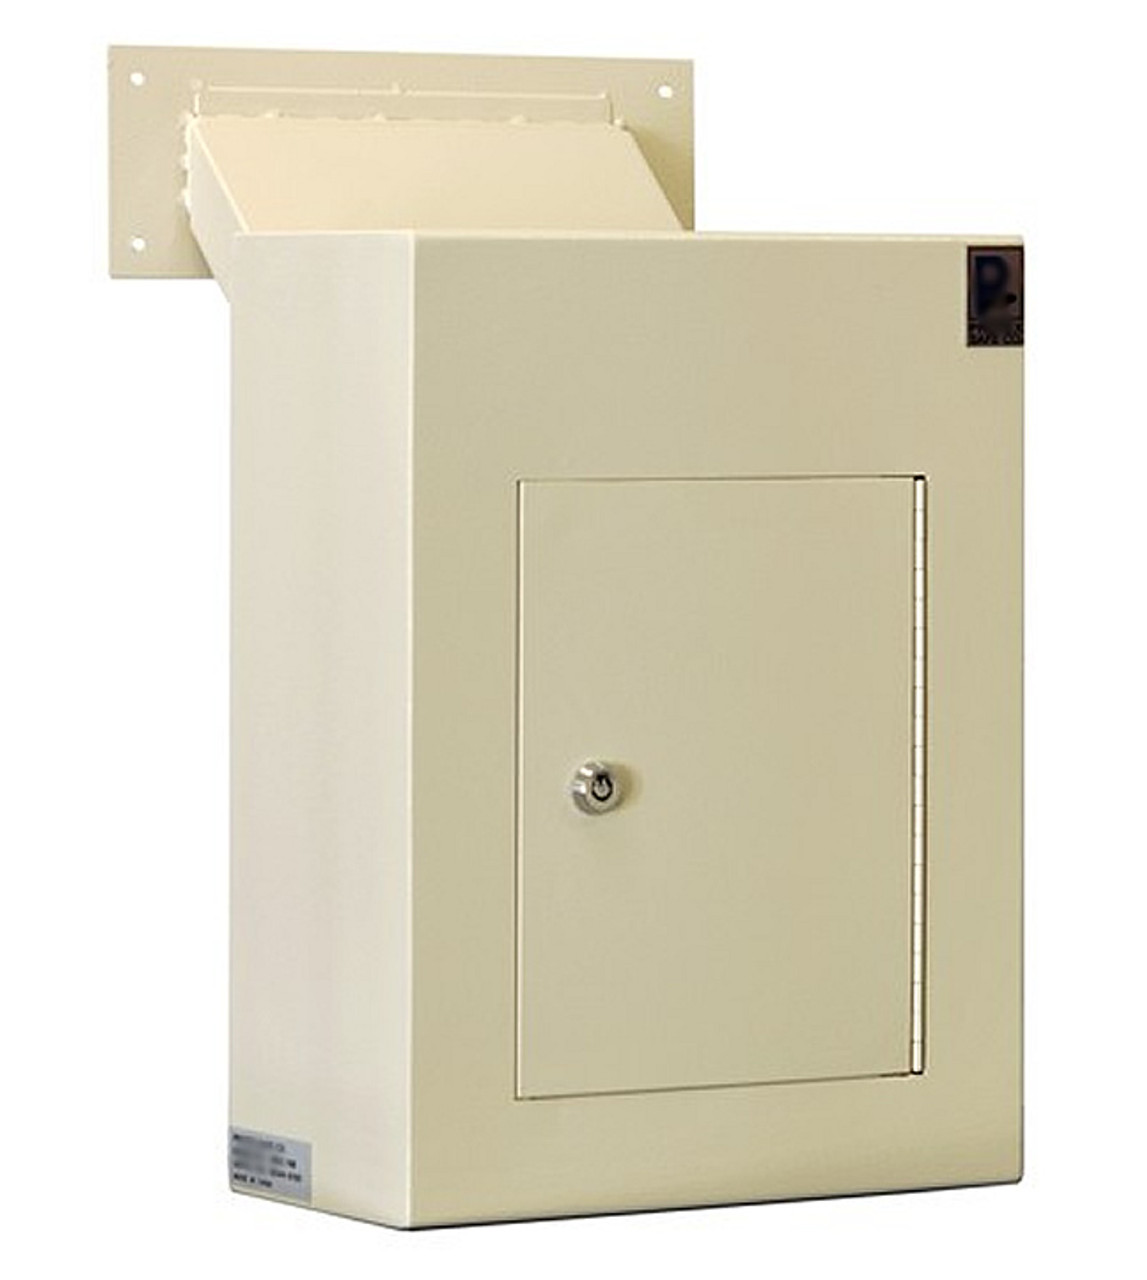 Adjustable Through the Wall Locking Drop Box key access door